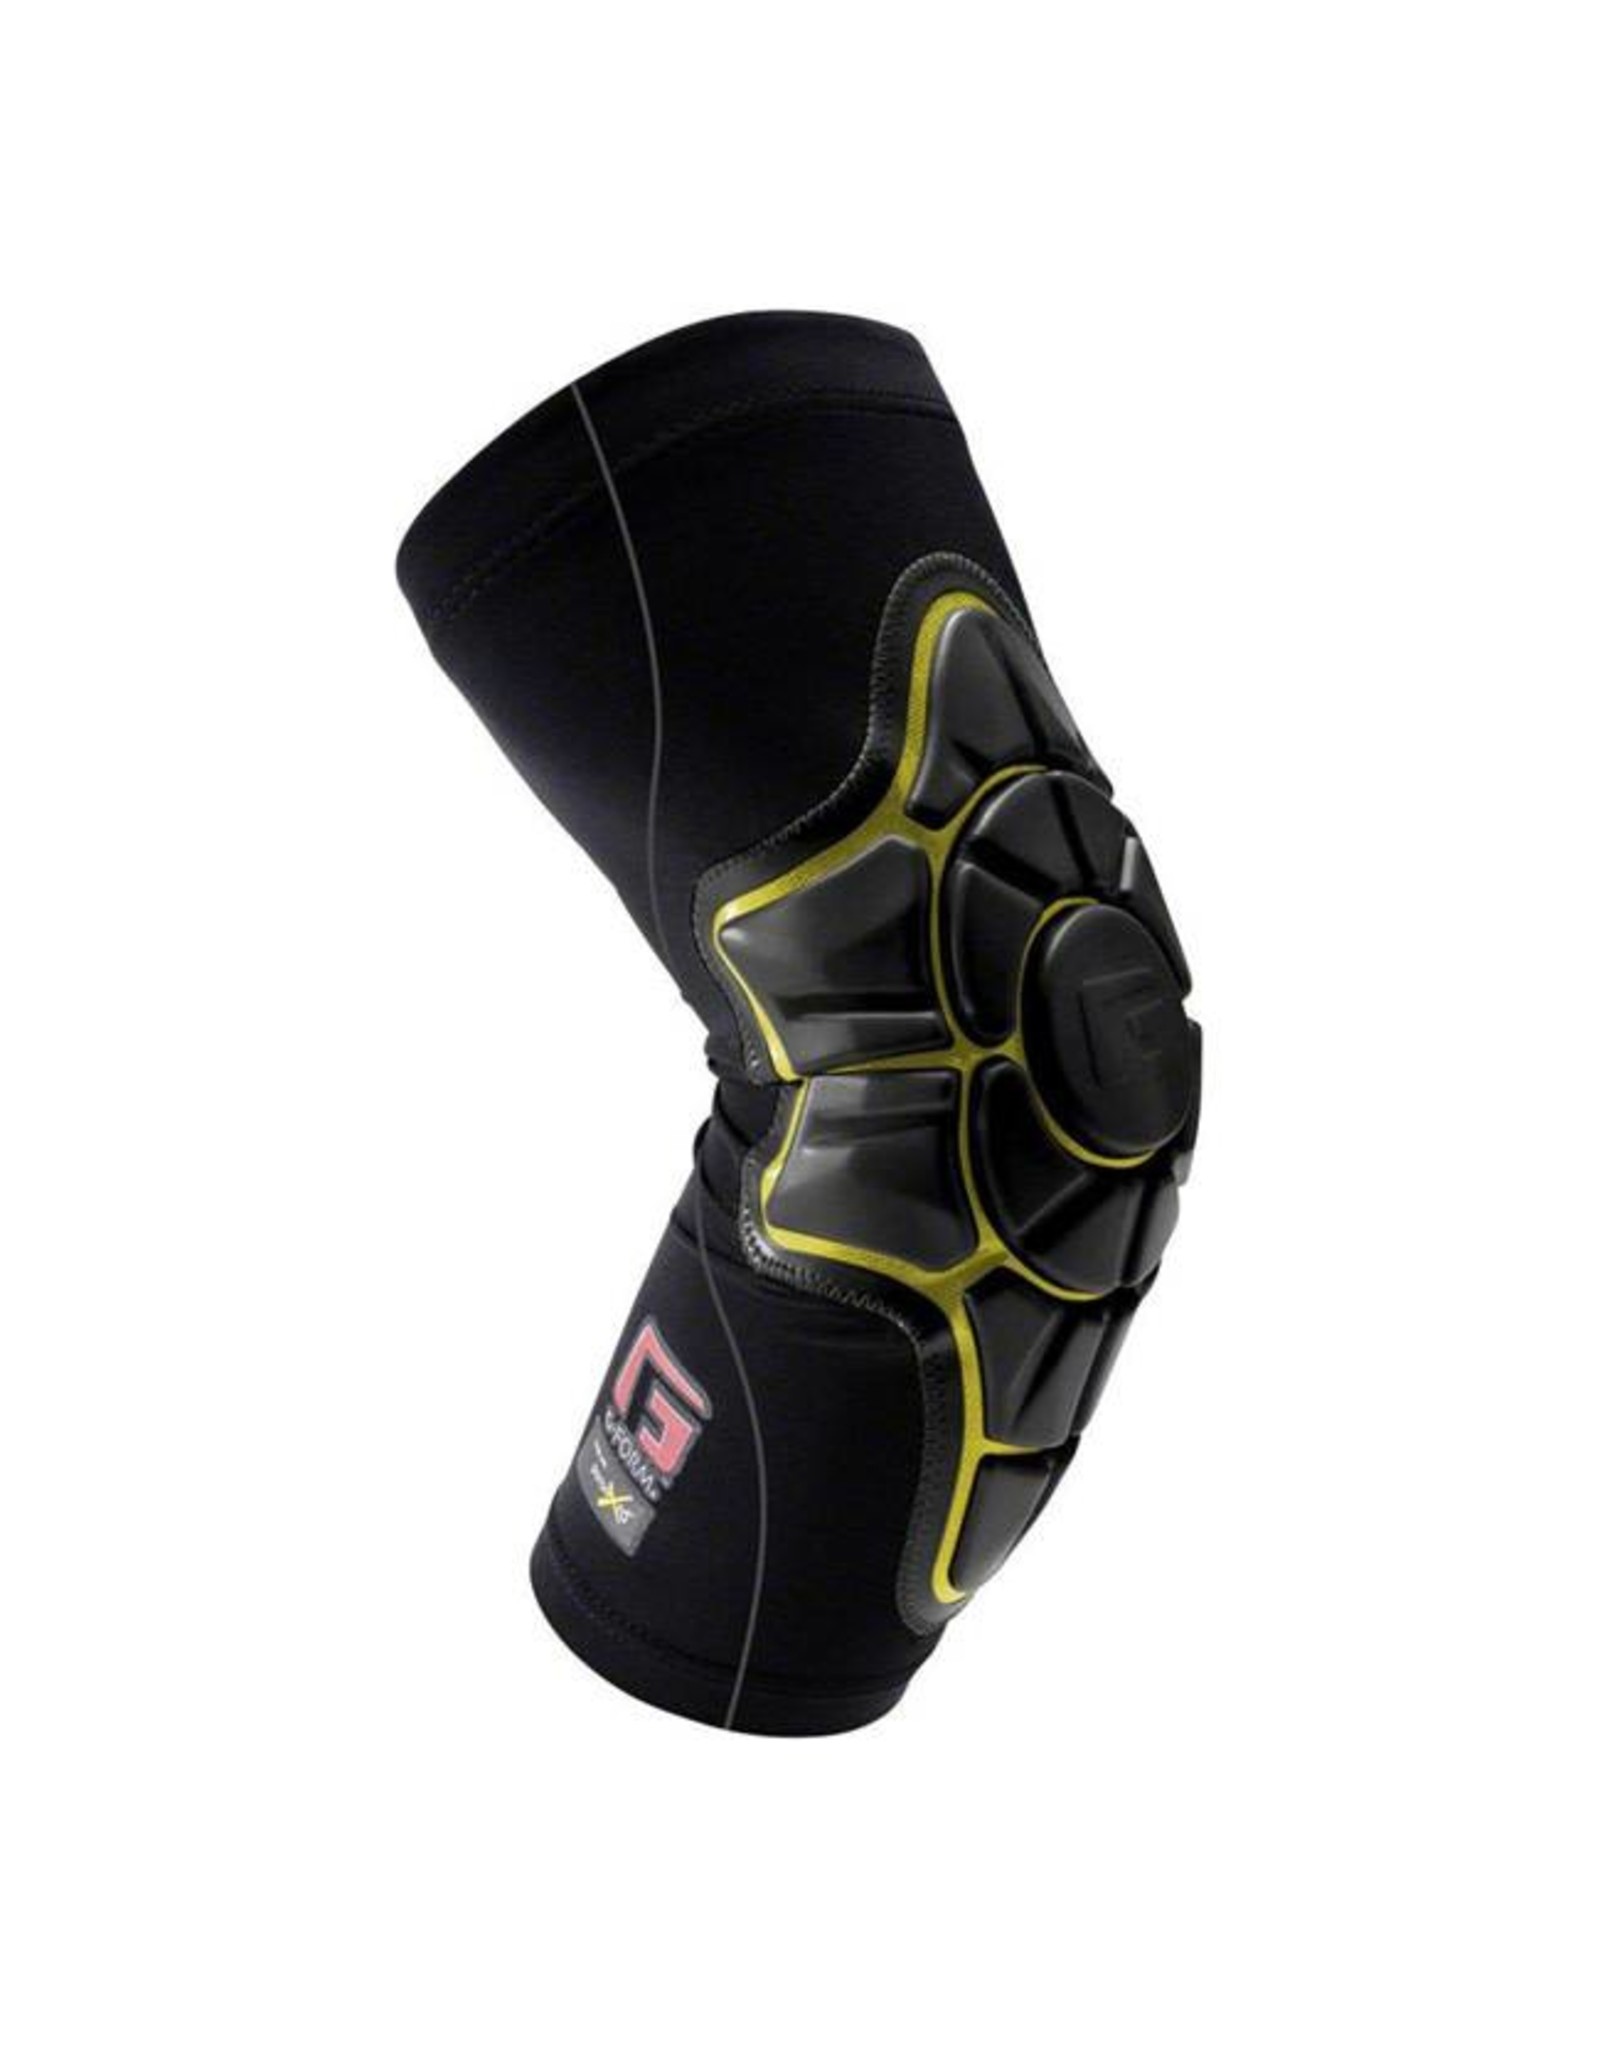 G-Form G-Form Pro-X Elbow Pad: Black/Yellow SM